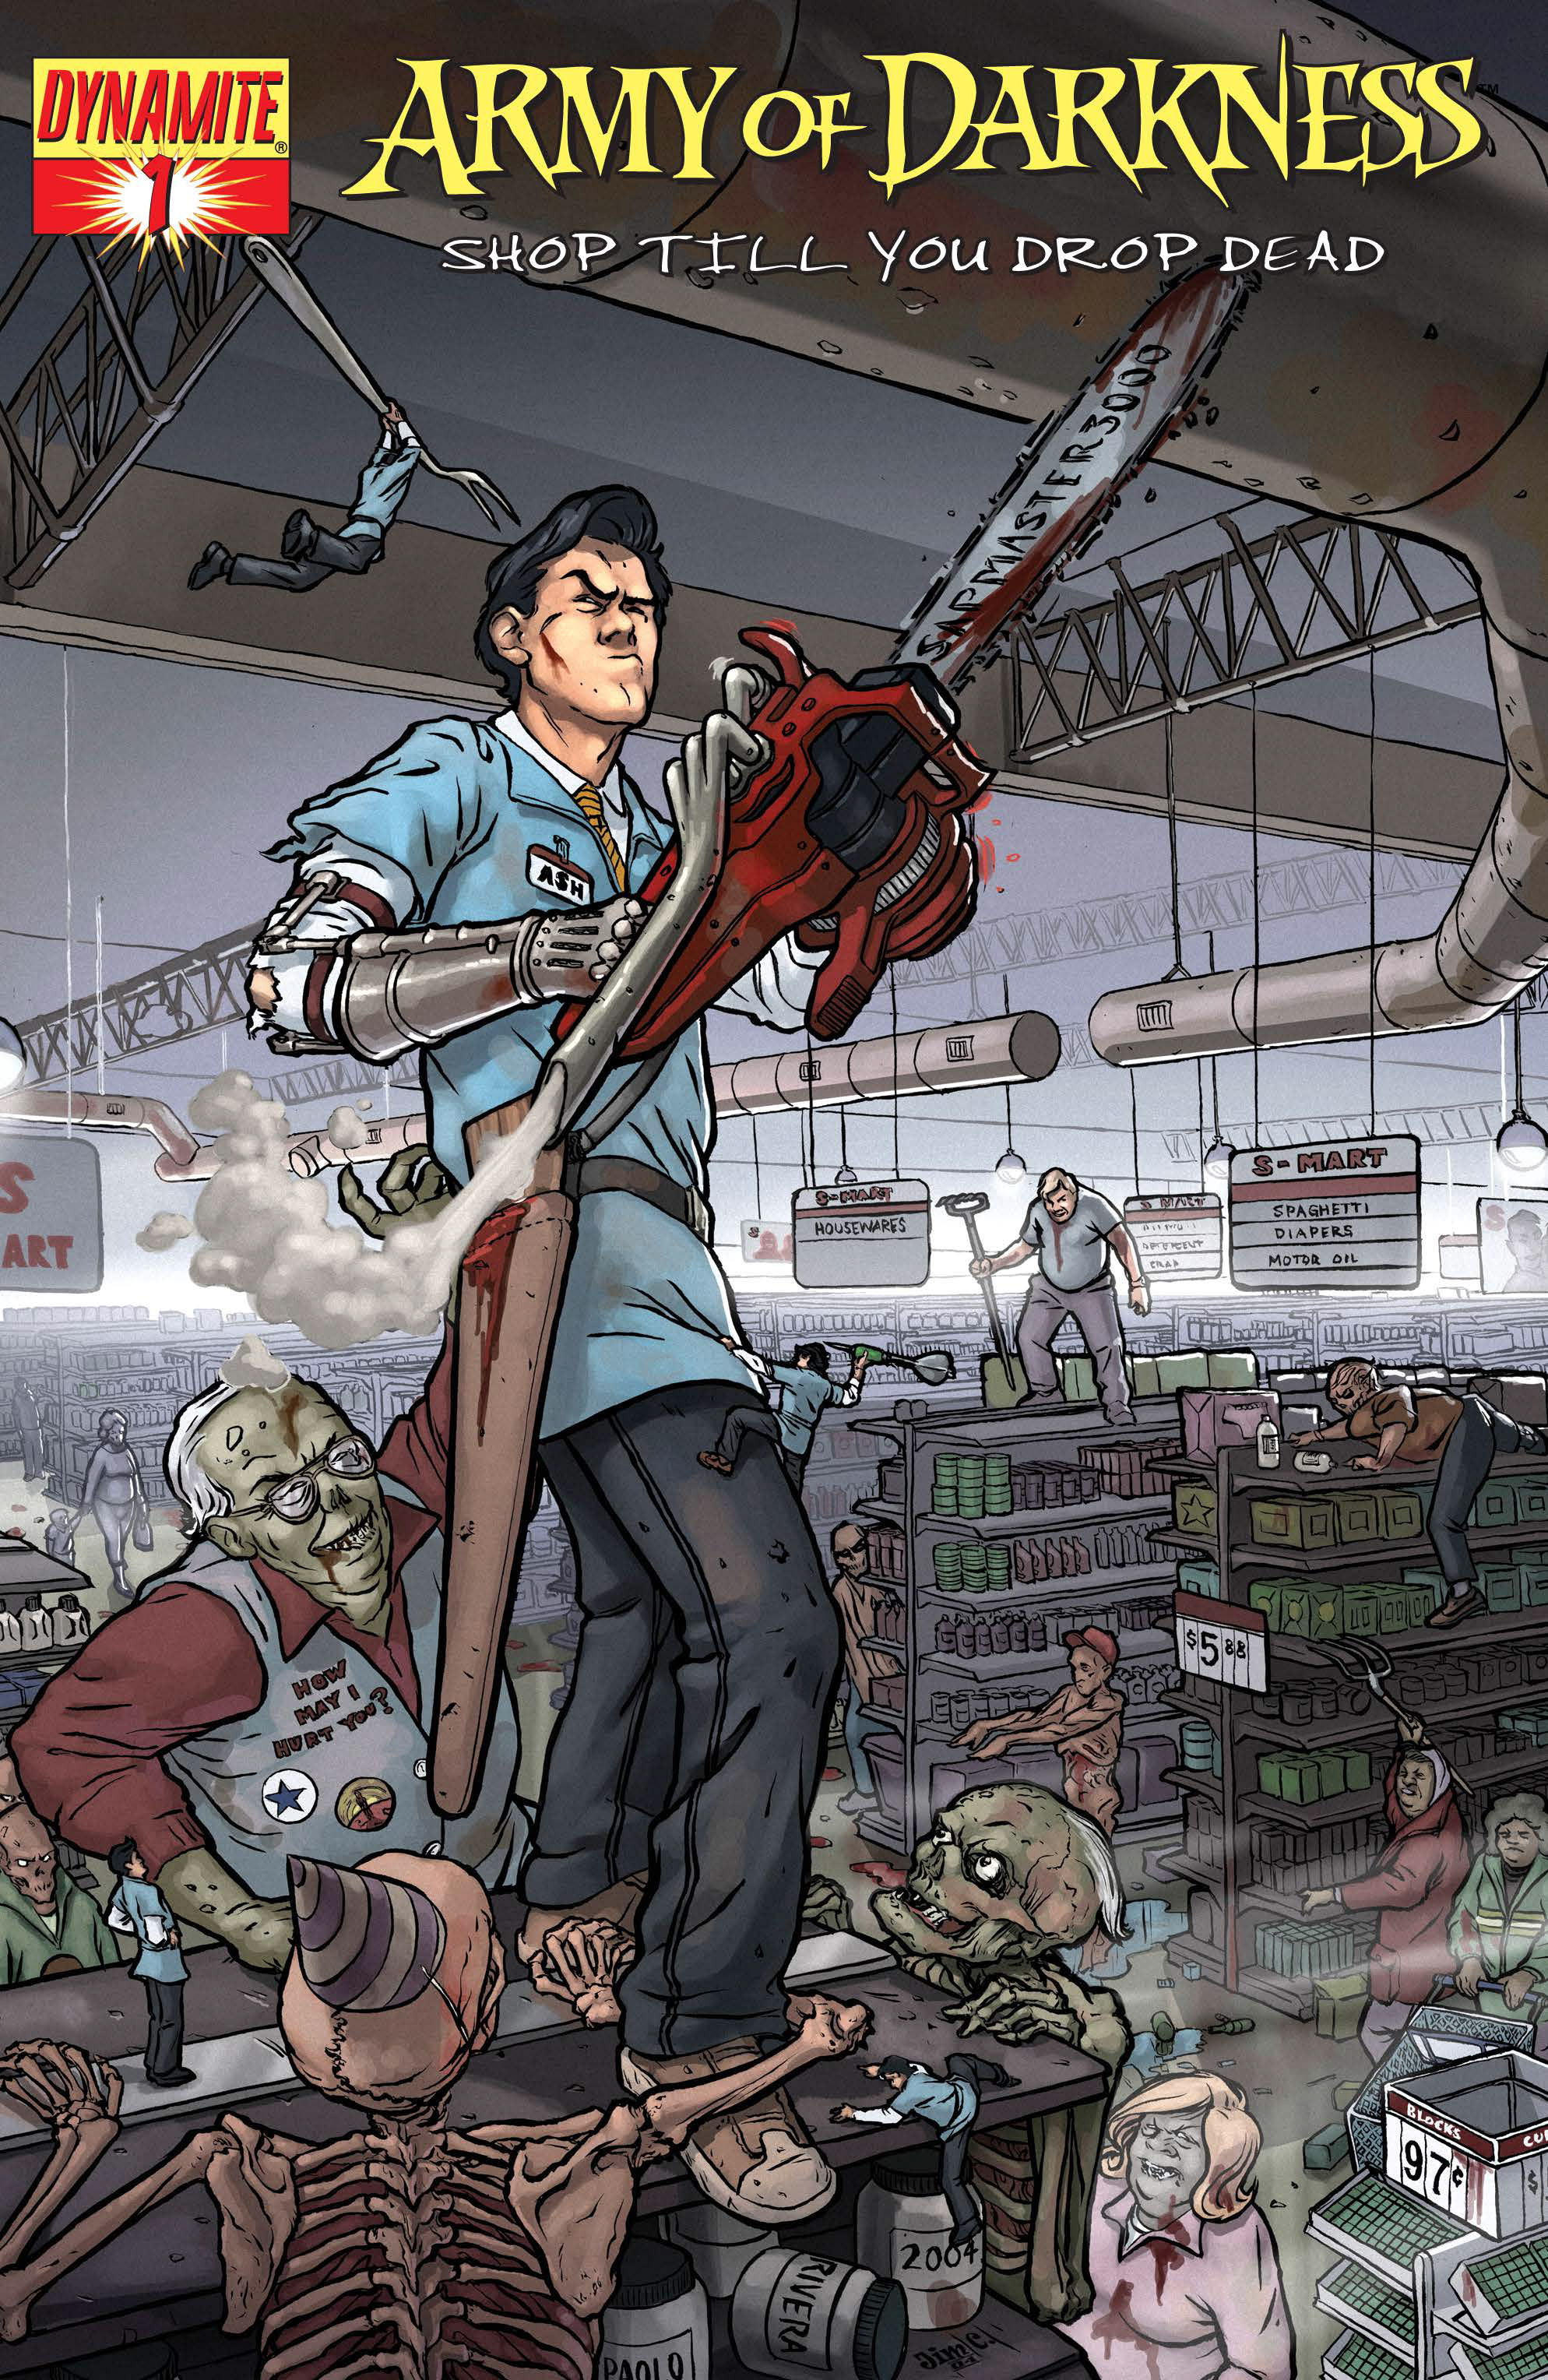 Read online Army of Darkness: Shop Till You Drop Dead comic -  Issue #Army of Darkness: Shop Till You Drop Dead TPB - 9